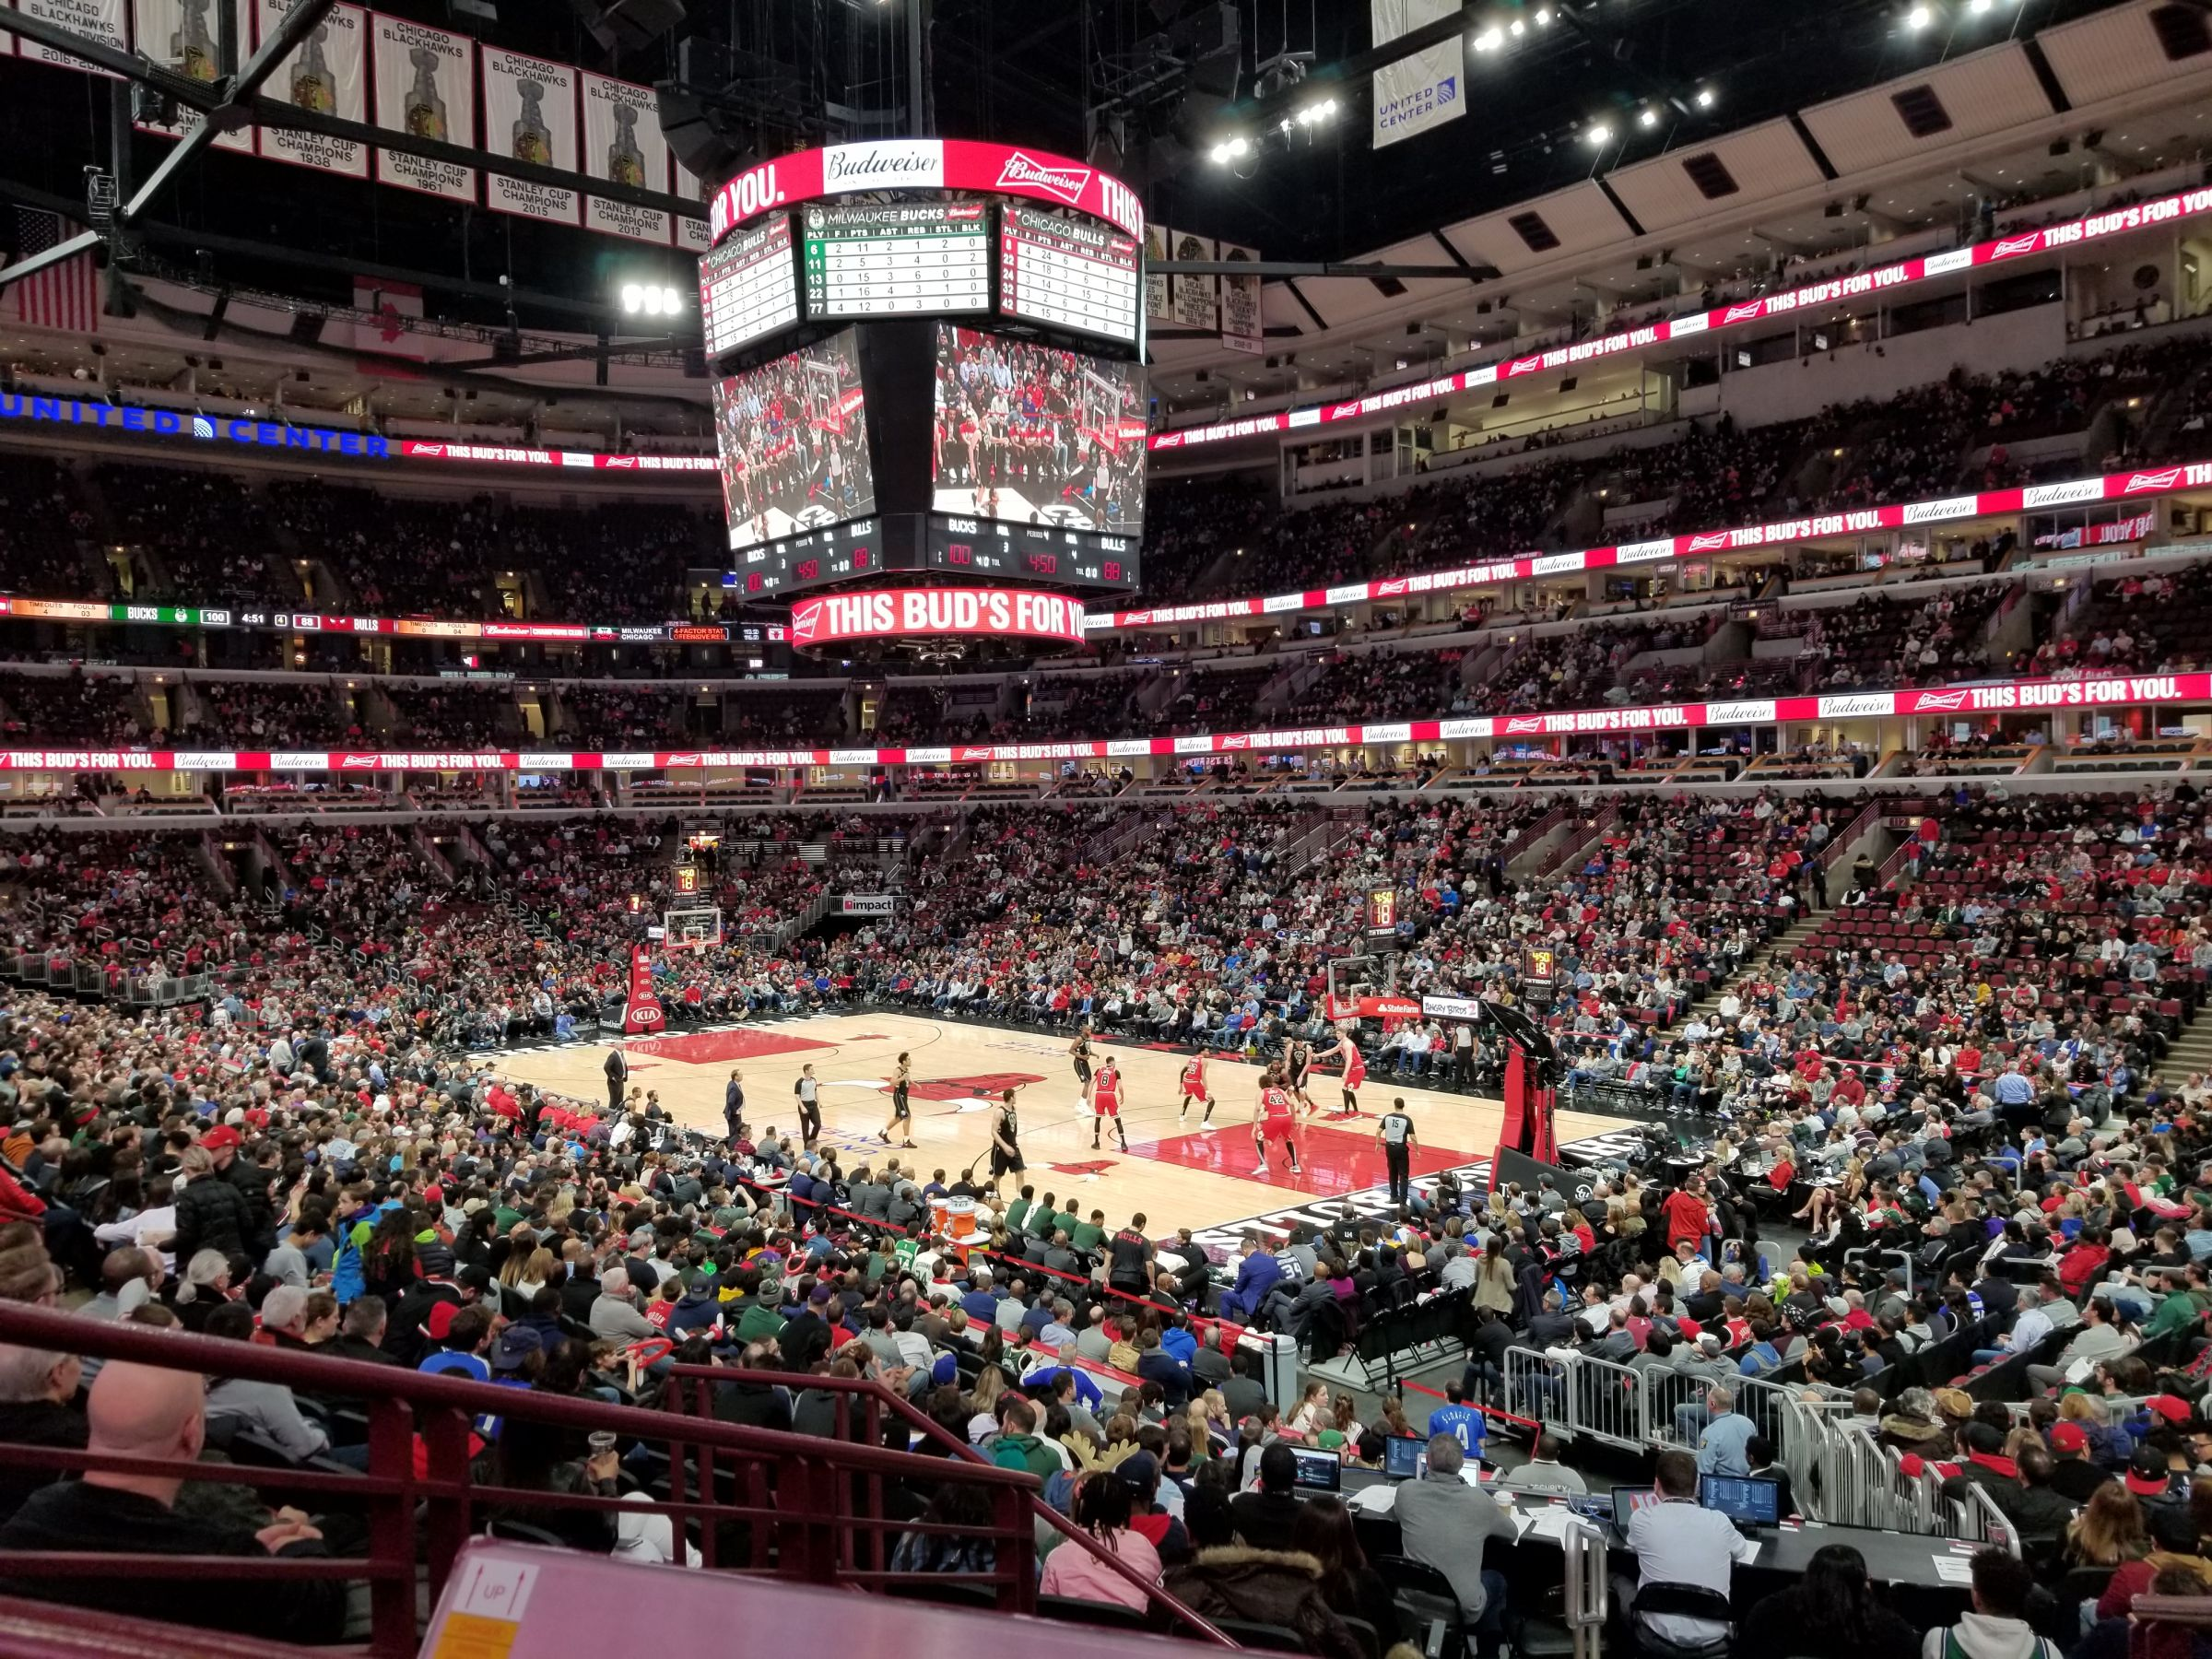 Chicago Bulls Seat View for United Center Section 120, Row 19, Seat 3